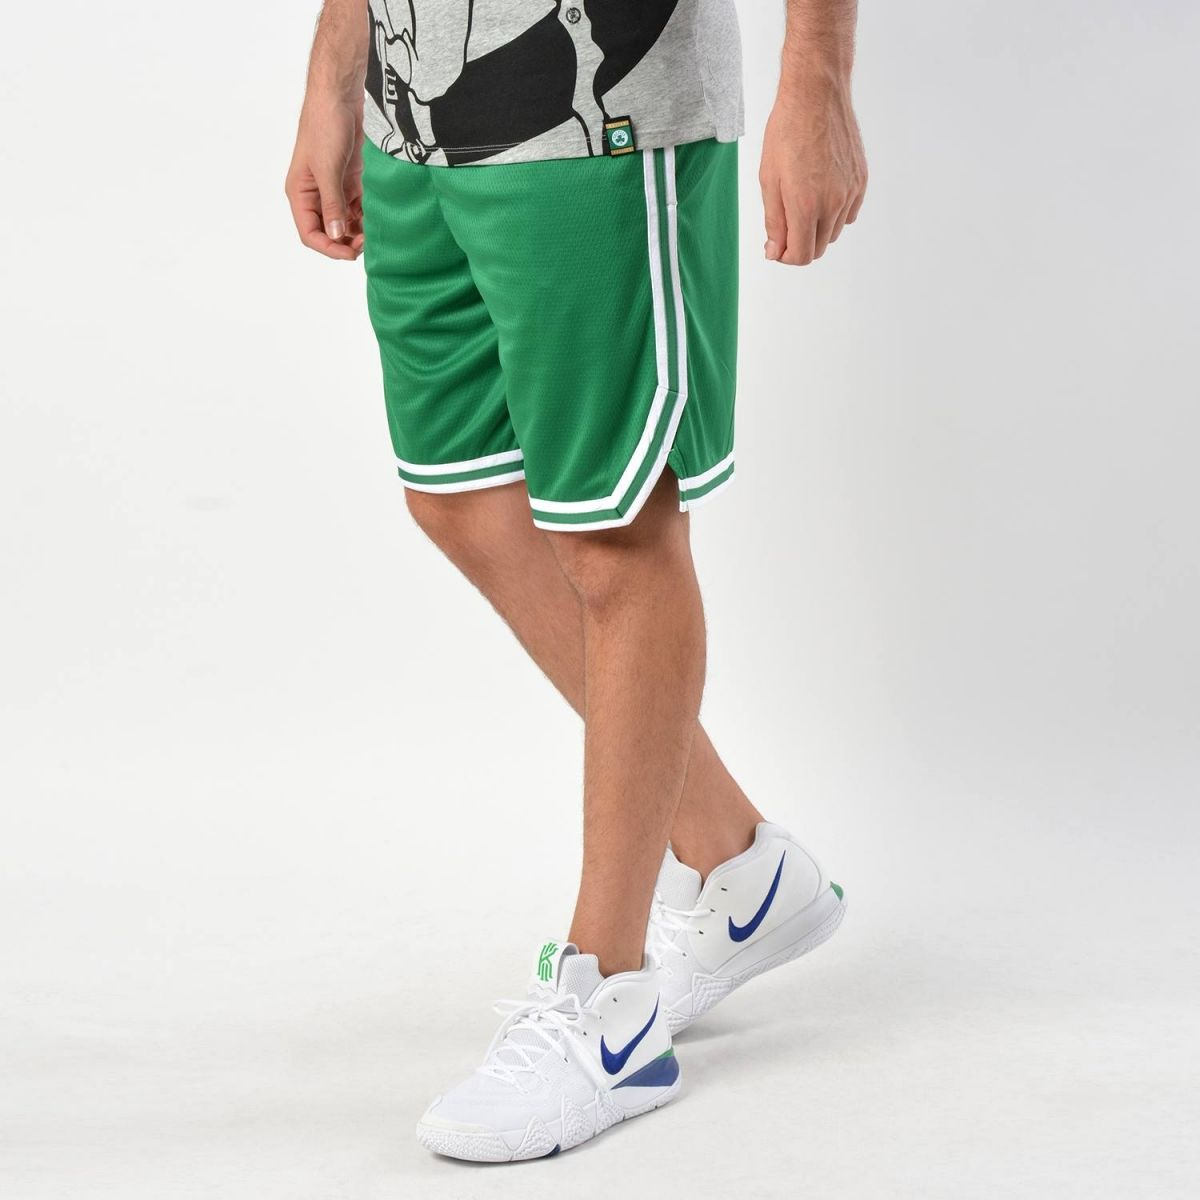 promo code 41e3e 28dd2 Type Shorts Nike NBA Boston Celtics Swingman Shorts